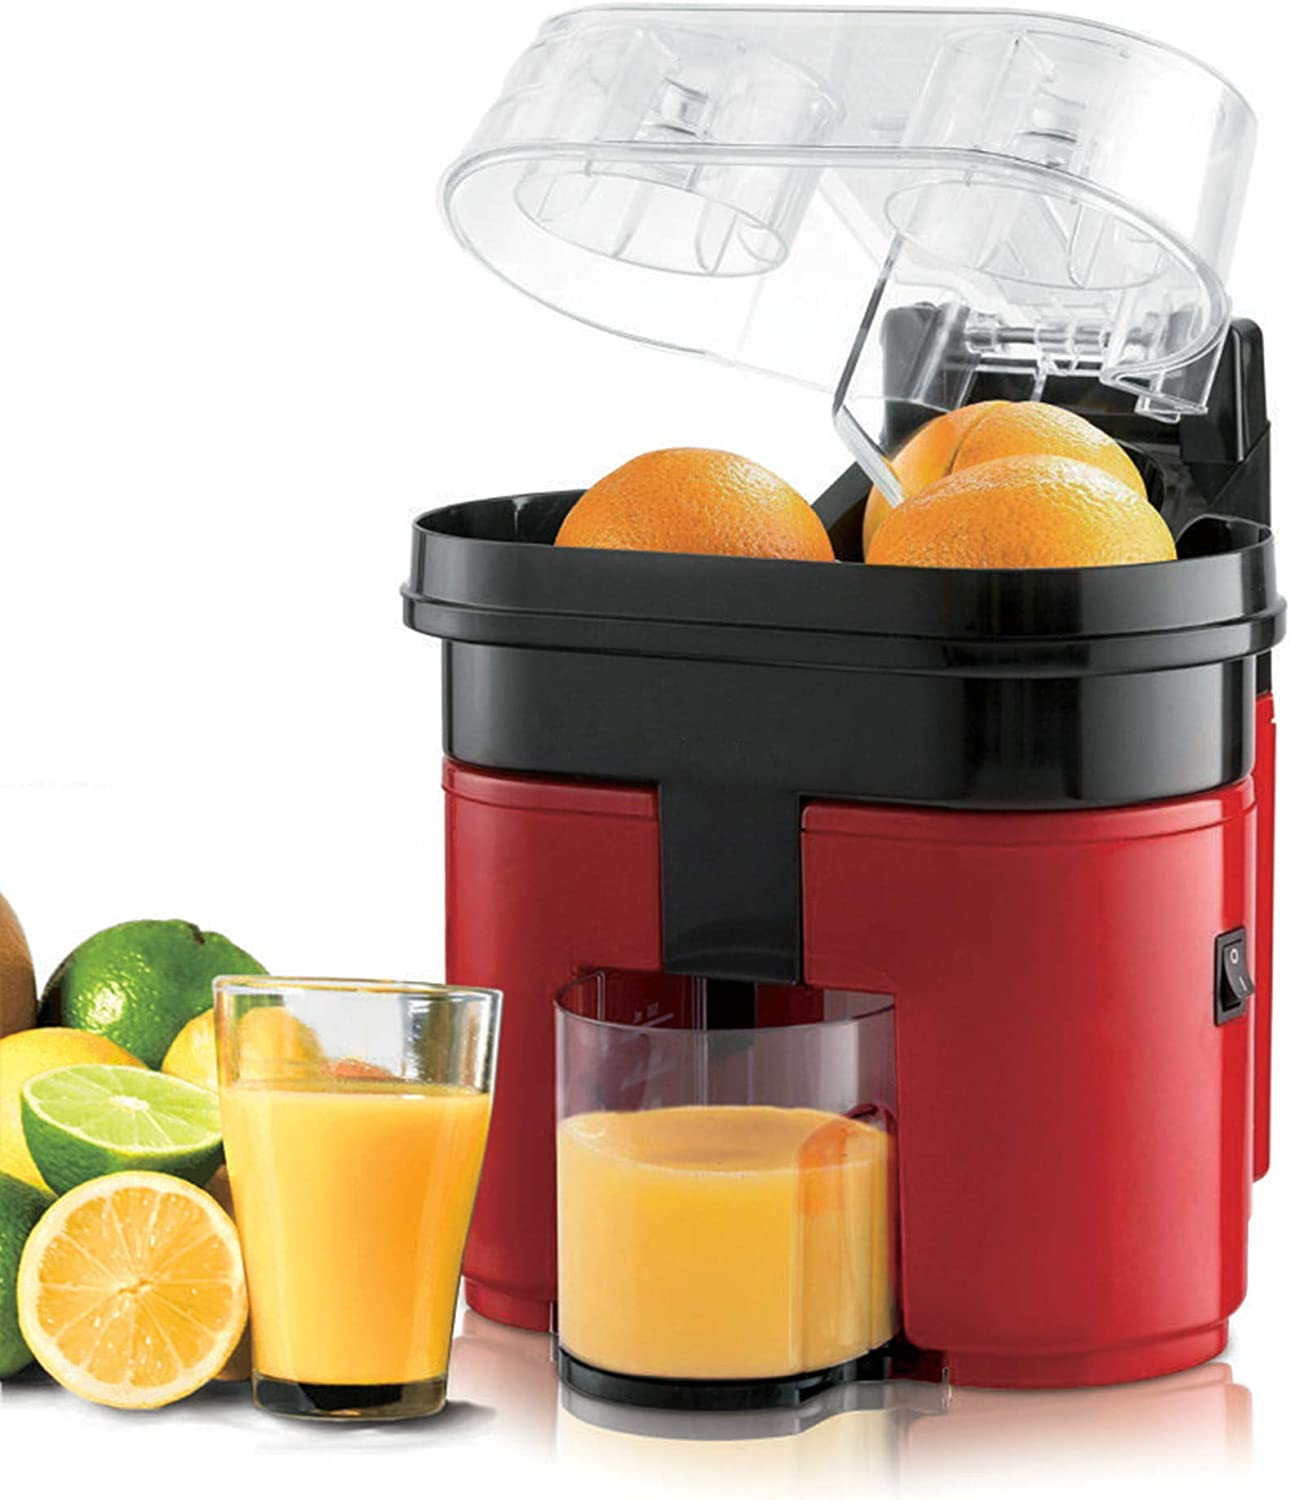 Fast Double Juicer 90w Electric Lemon Orange Fresh Juicer With Anti-drip Valve Citrus Fruits Squeezer Household 220v Sonifer Free Shipping